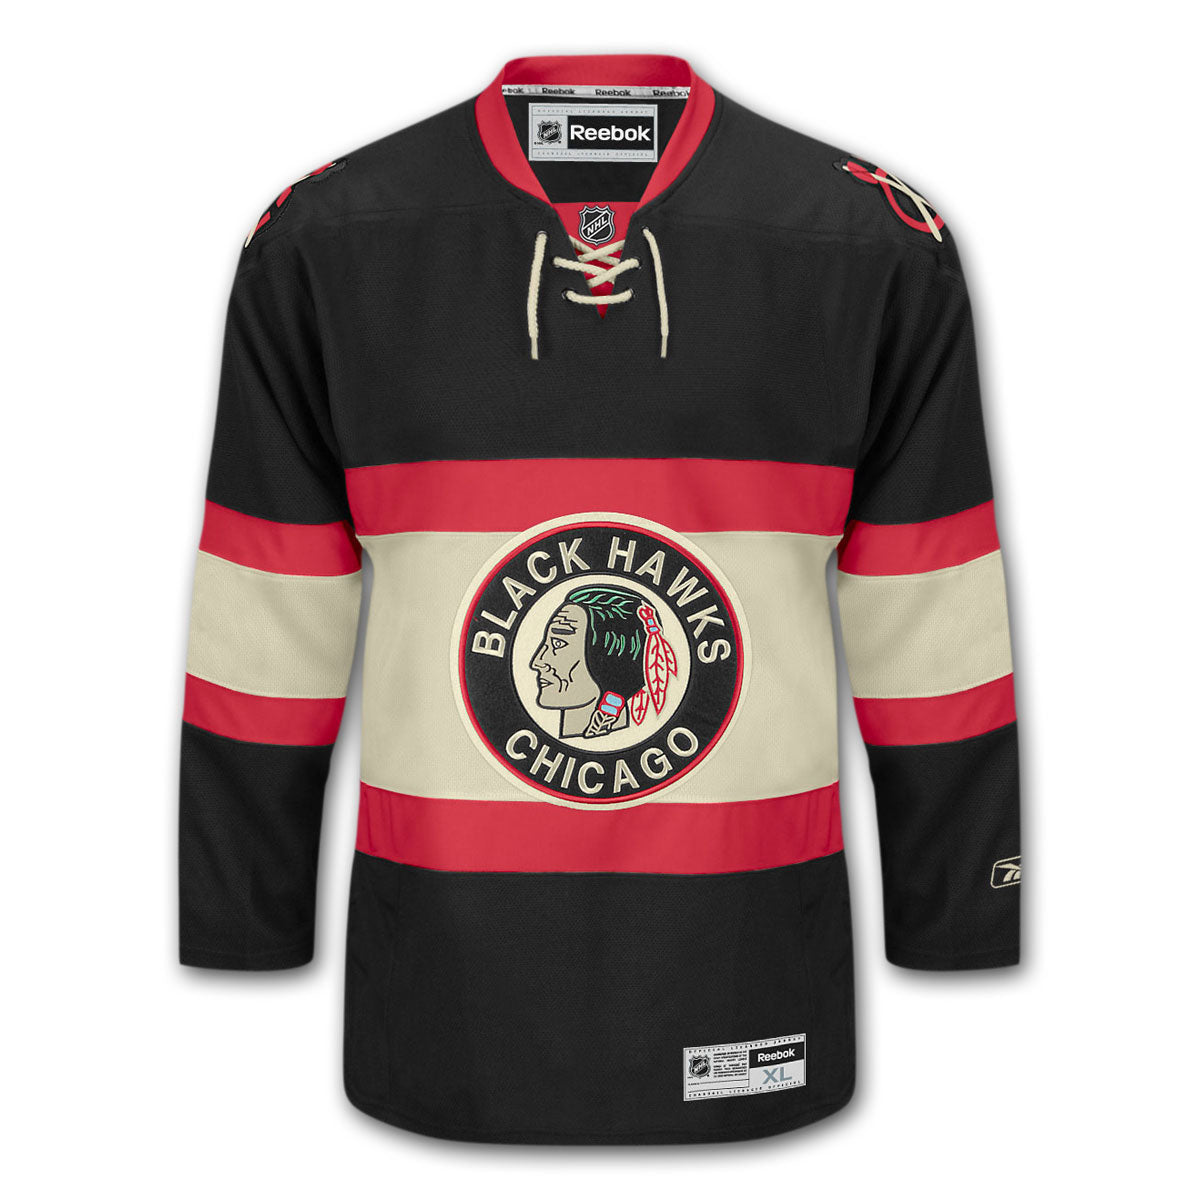 709249a36d2 ... premier road jersey small d2d31 671bd; clearance alternate a official  patch for chicago blackhawks alt 2009 11 jersey b1c2d 14902